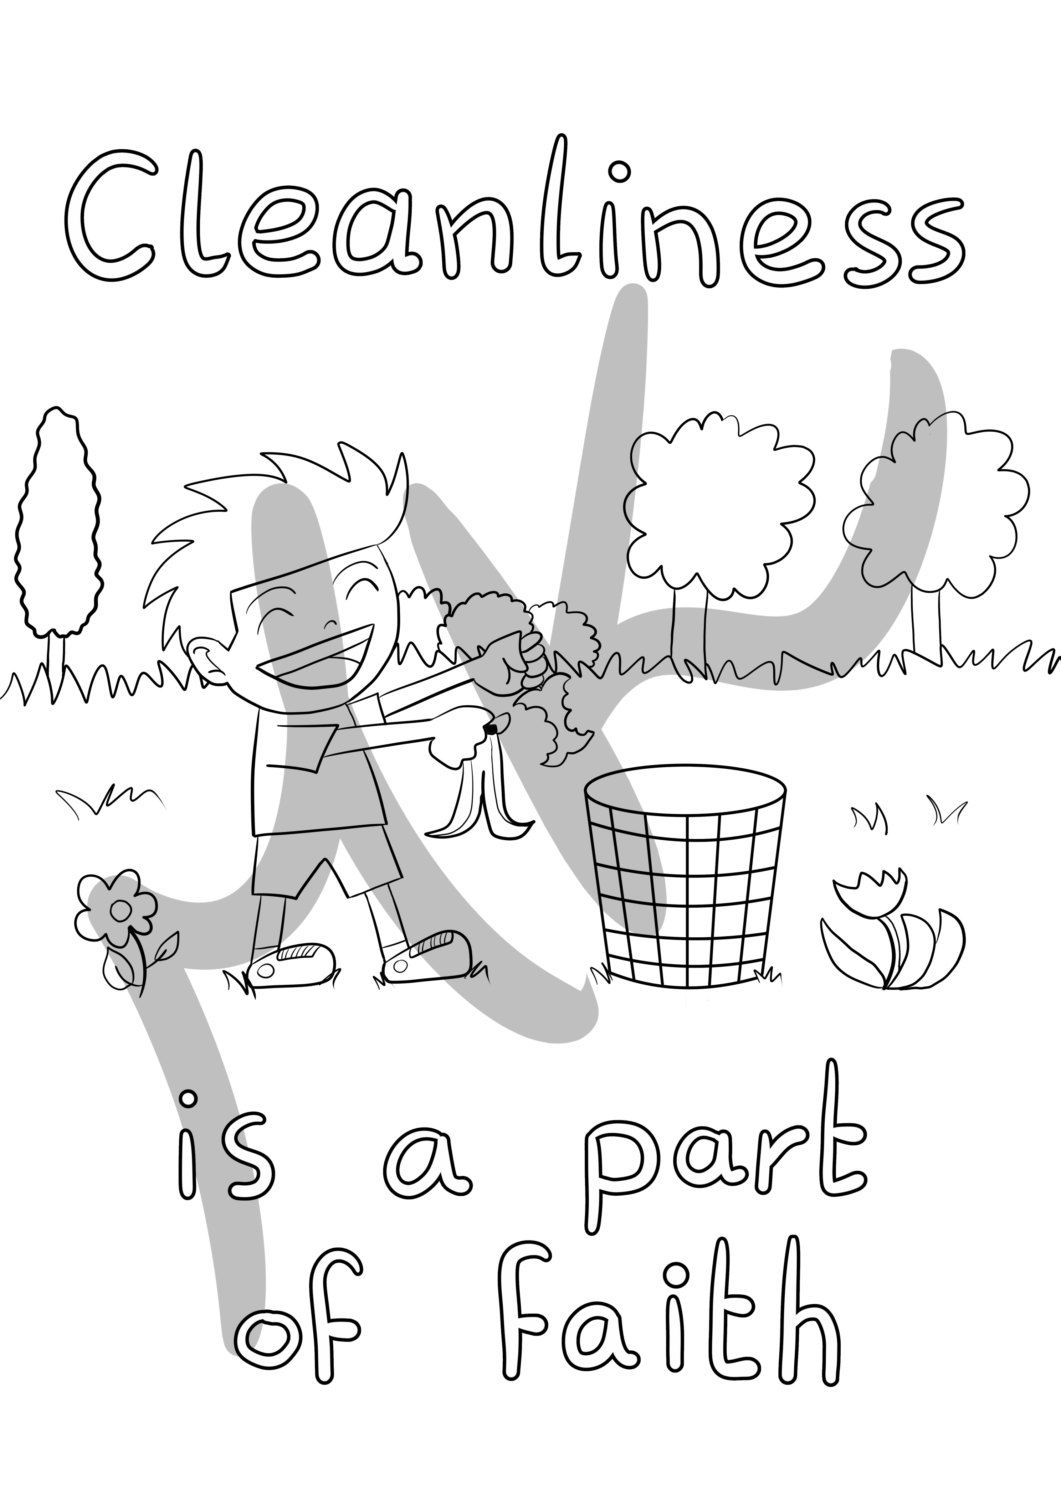 Personal Hygiene (part 1 of 2): Cleanliness is Half of Faith